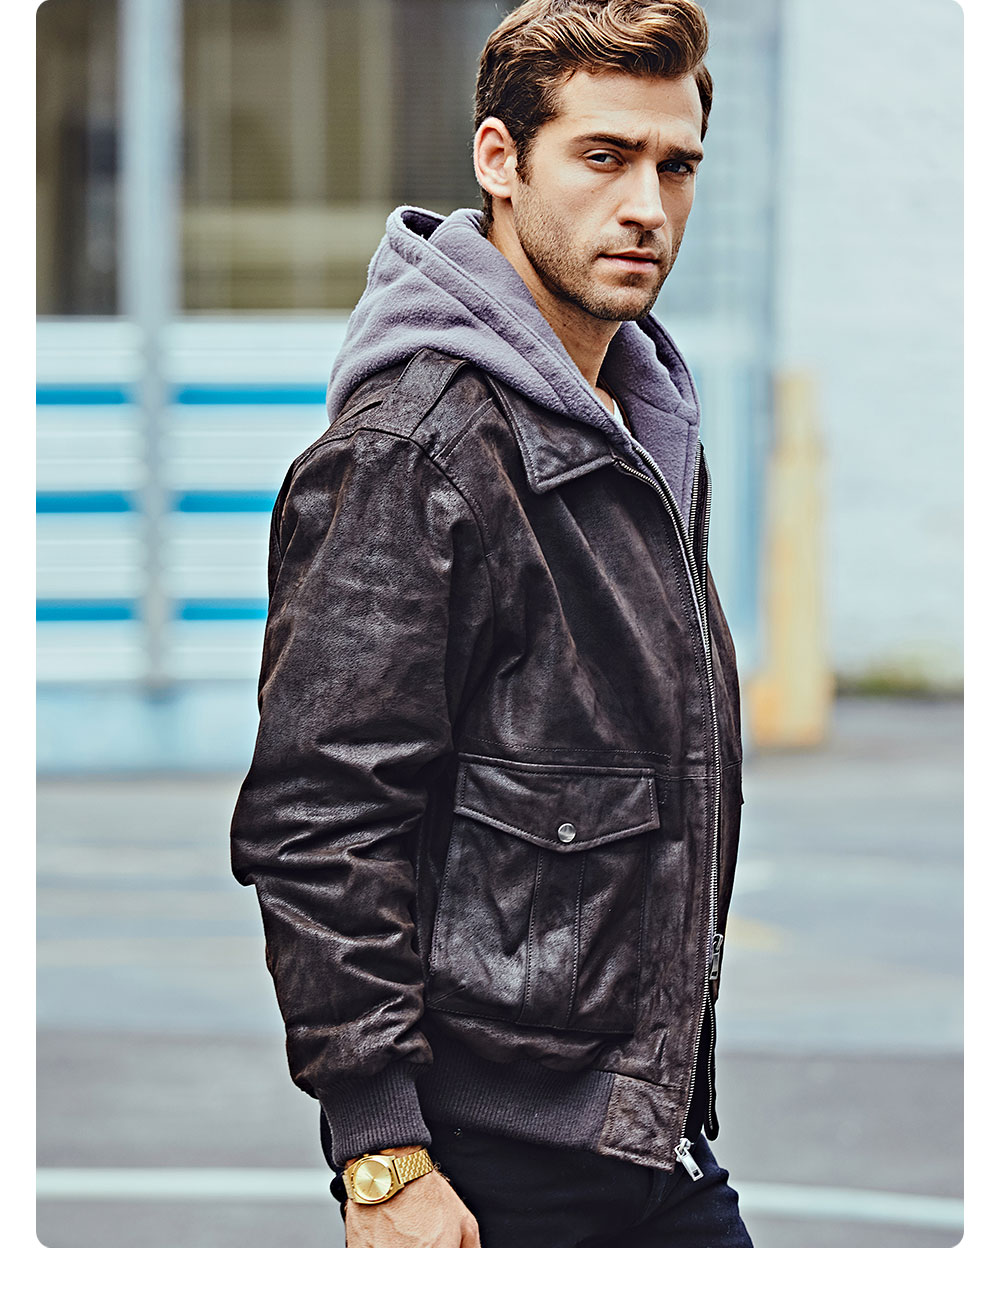 Hb2dcd4866a344793863c304496c04e17h FLAVOR New Men's Genuine Leather Bomber Jackets Removable Hood Men Air Forca Aviator winter coat Men Warm Real Leather Jacket